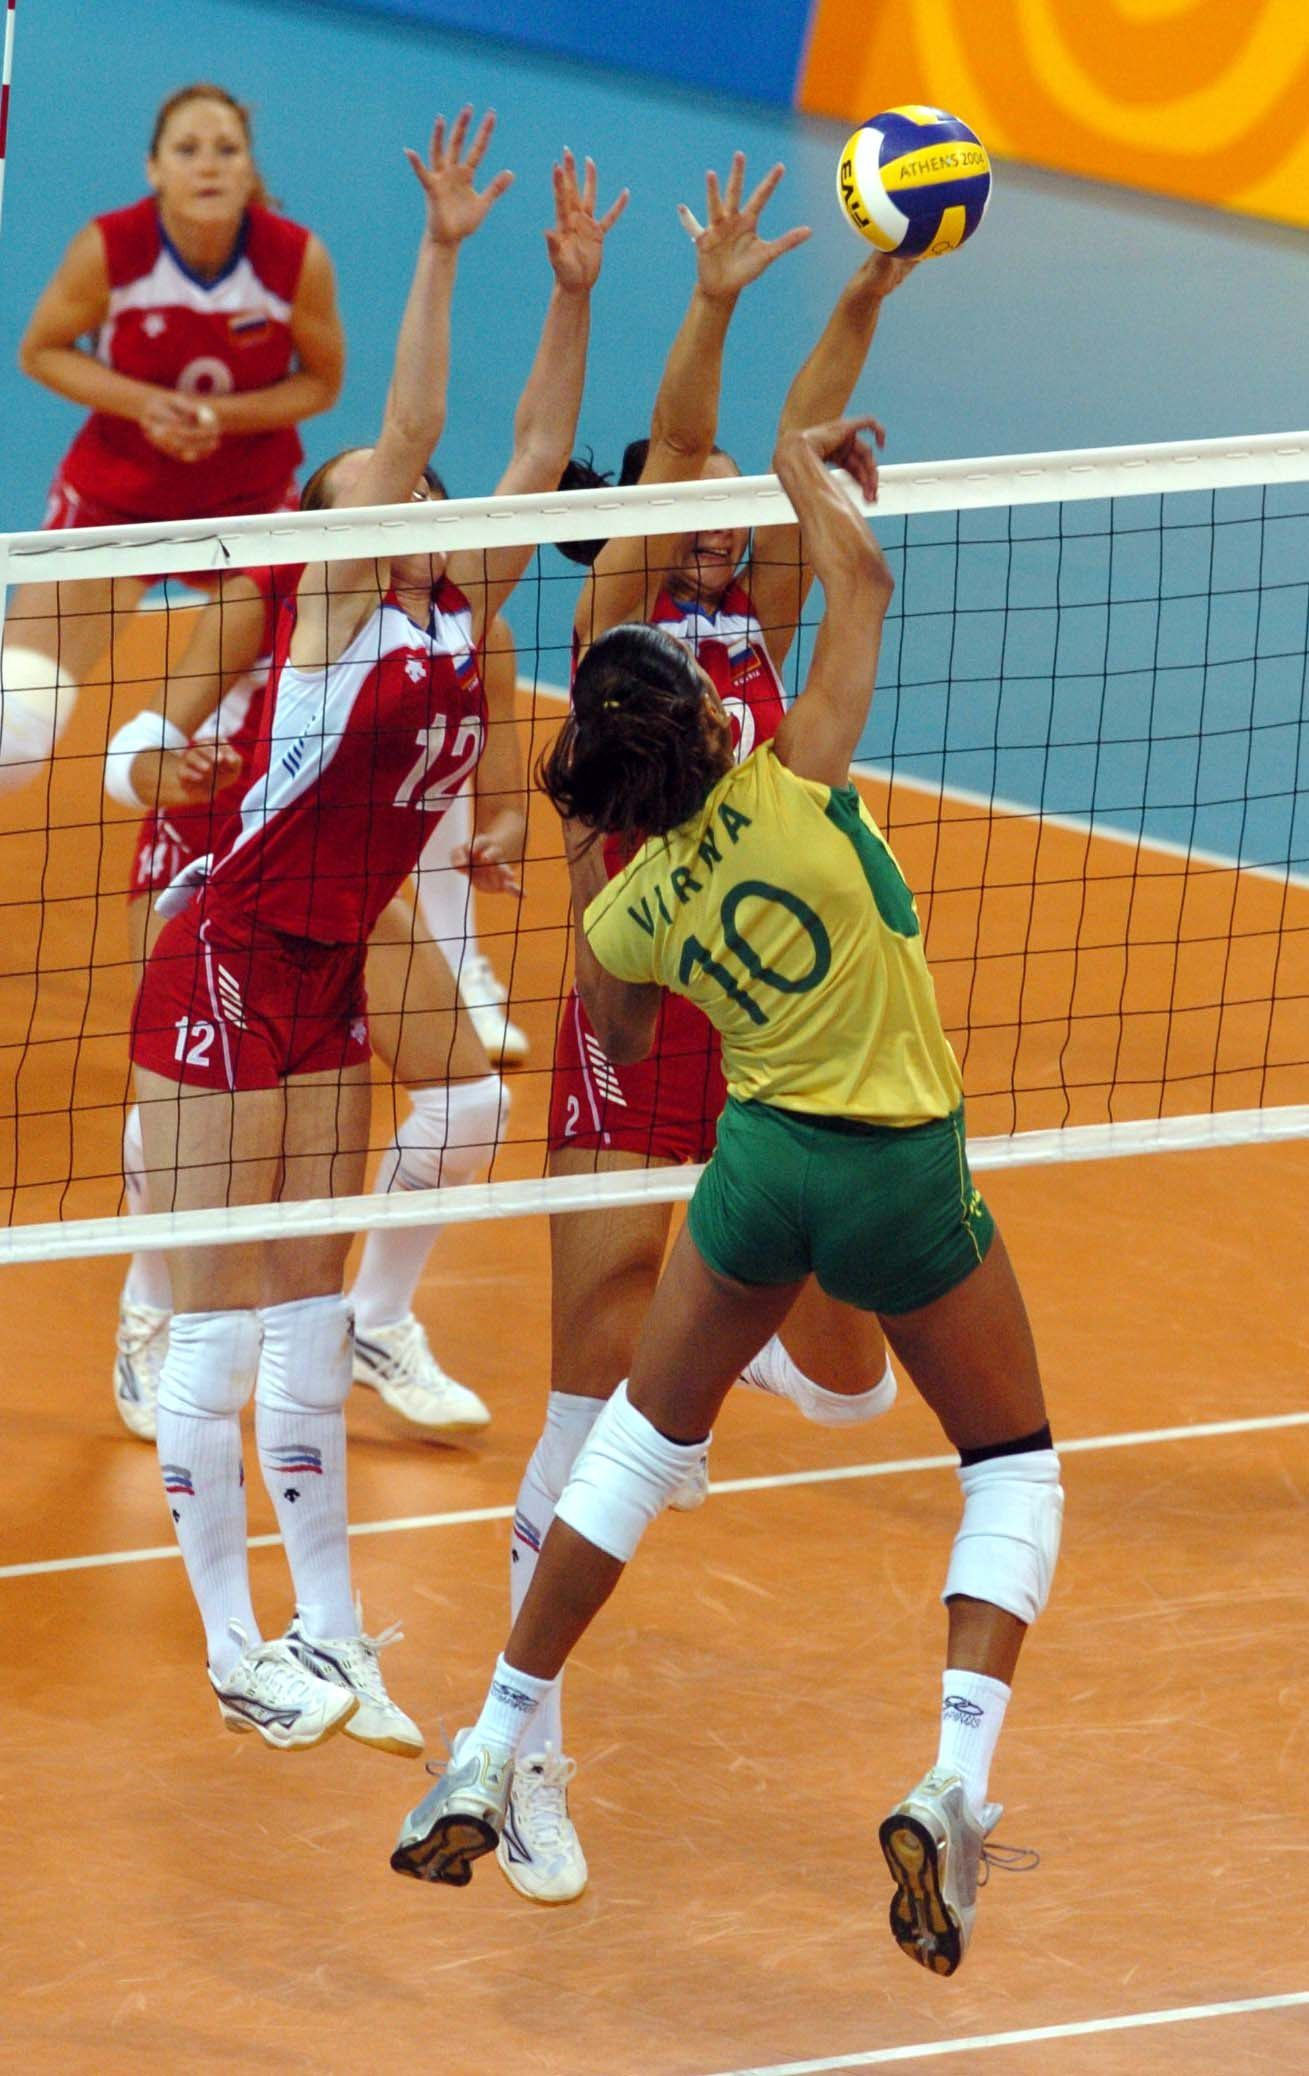 Women S Volleyball Olympic Games 2004